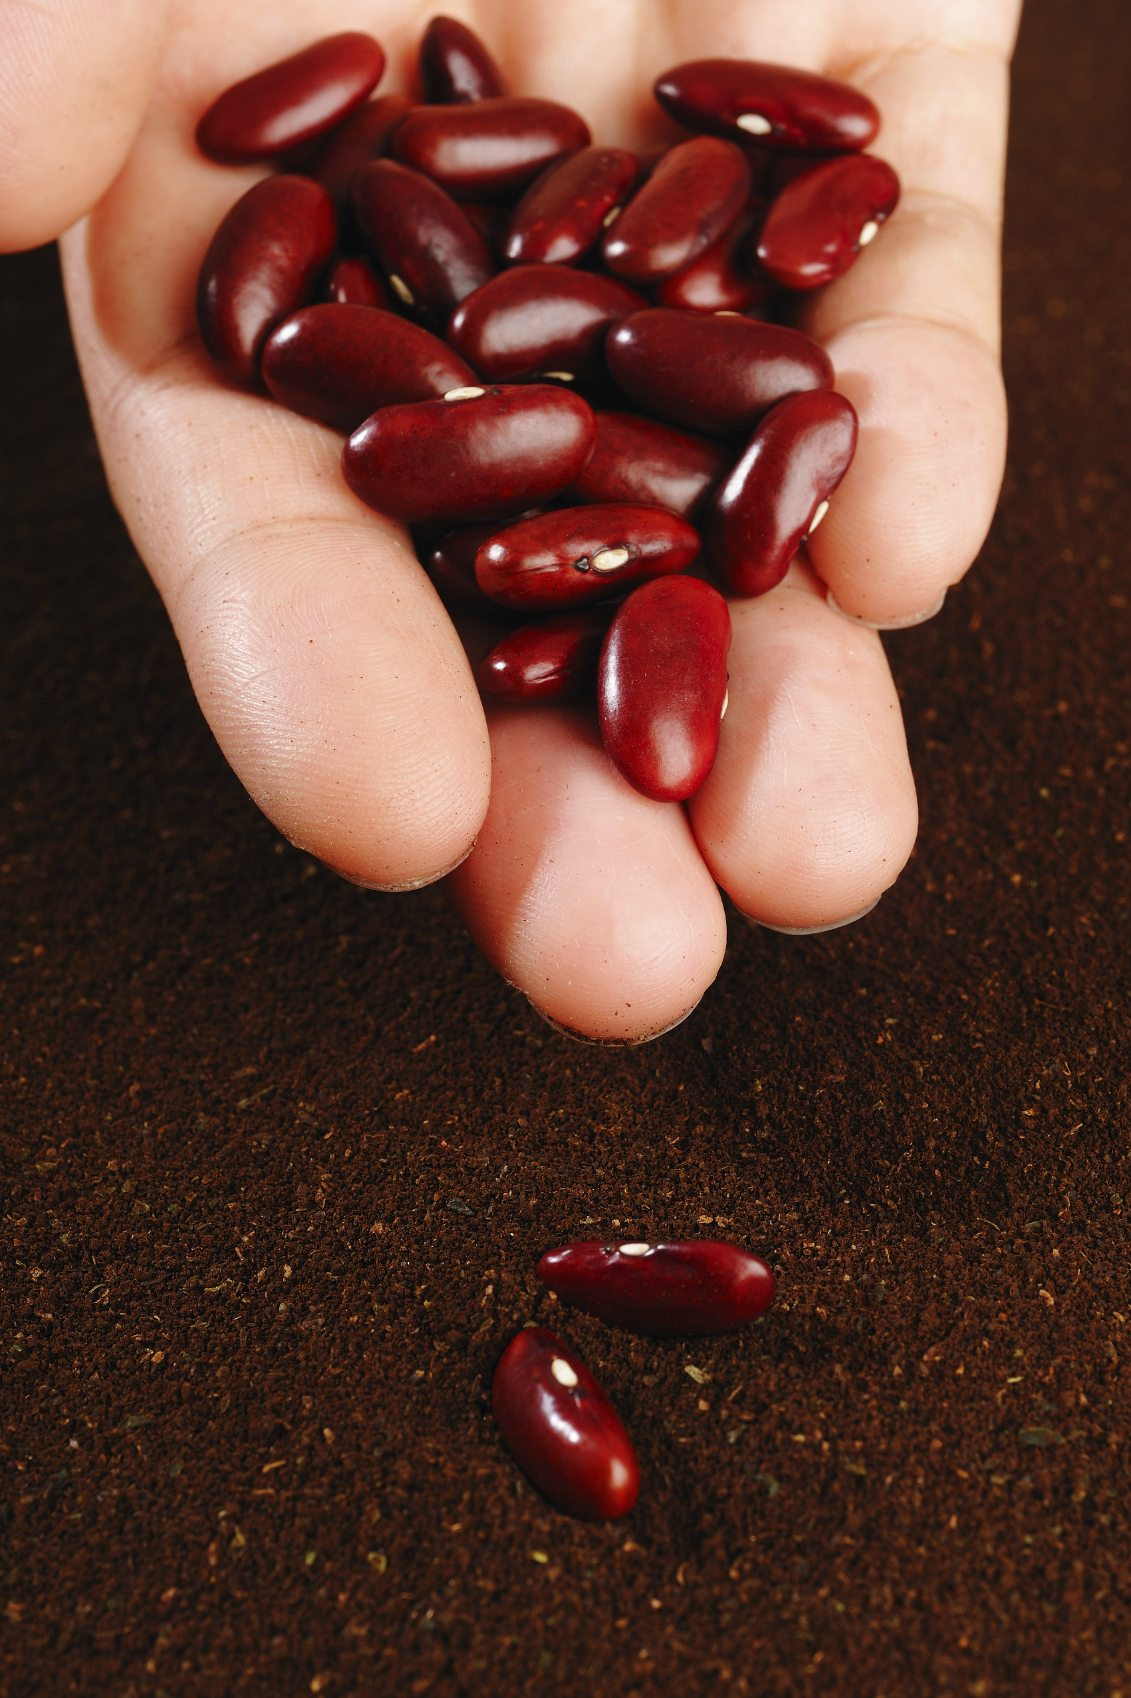 Growing Kidney Beans Tips On Caring And Harvesting Kidney Beans